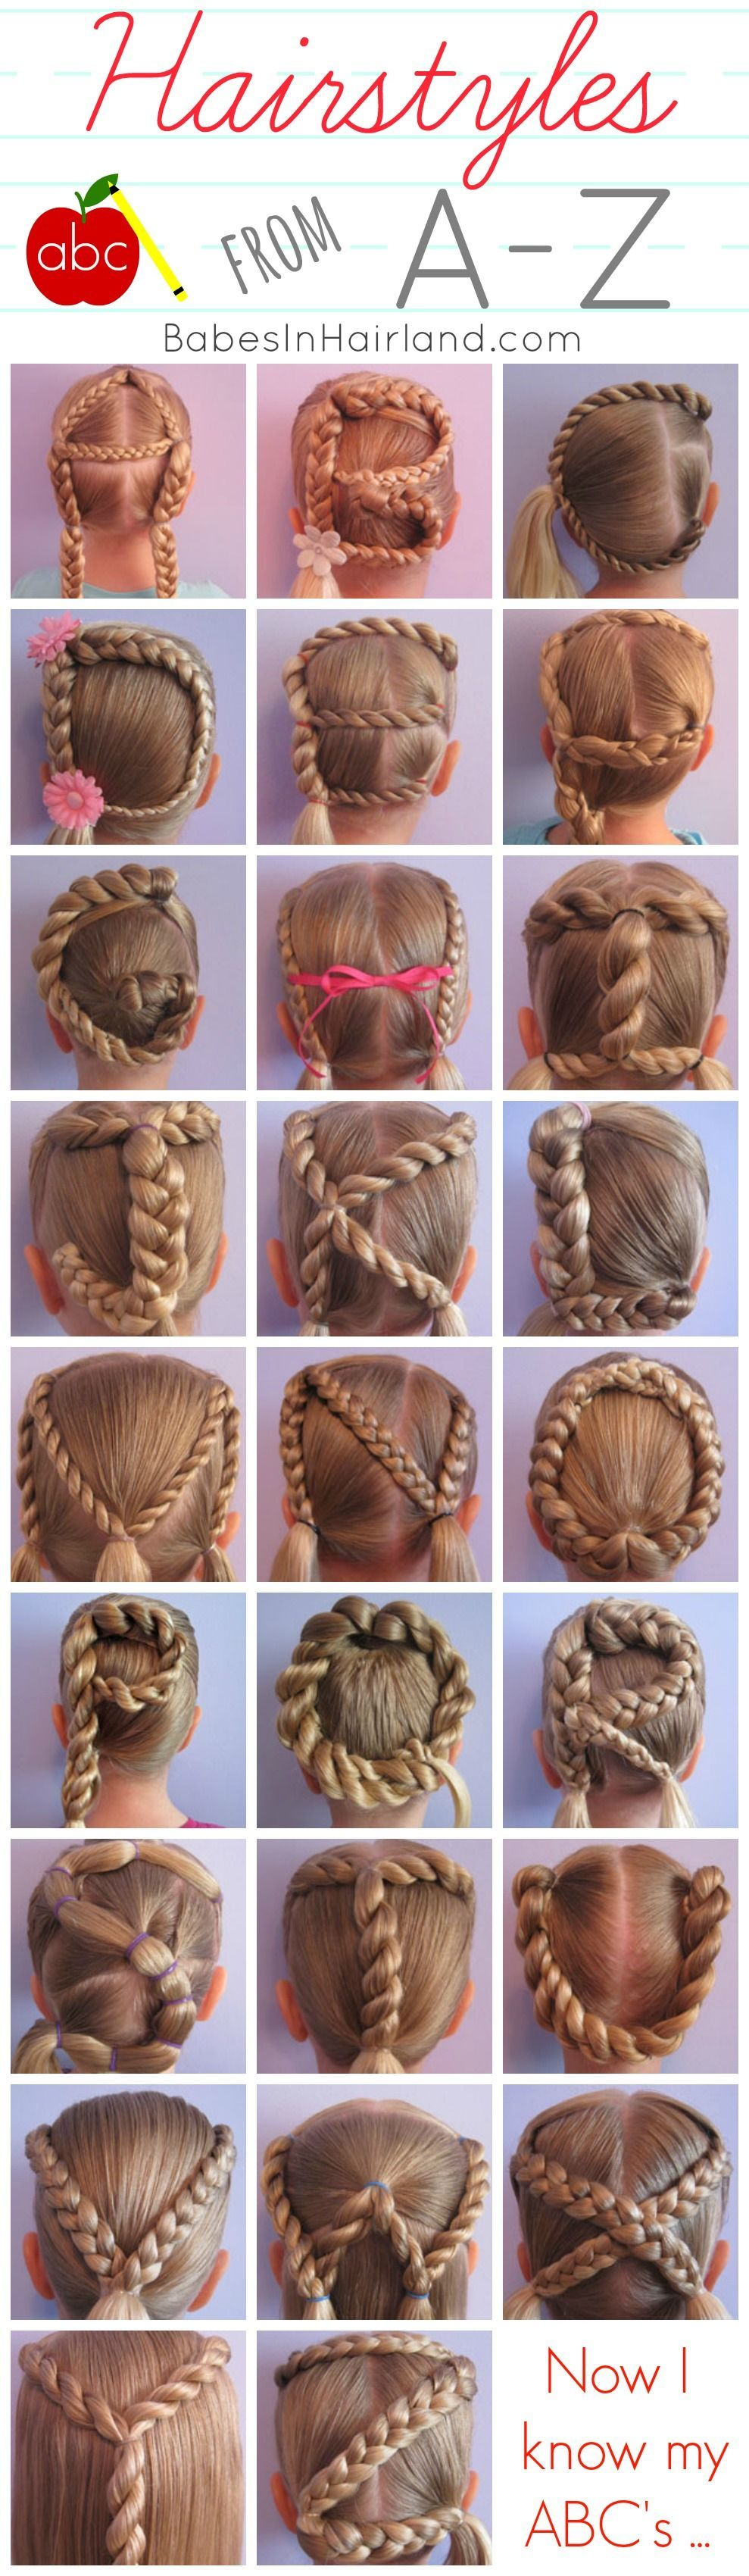 Hairstyles from A-Z from  - perfect if you have younger girls & want to make learning the ABC's even more fun!